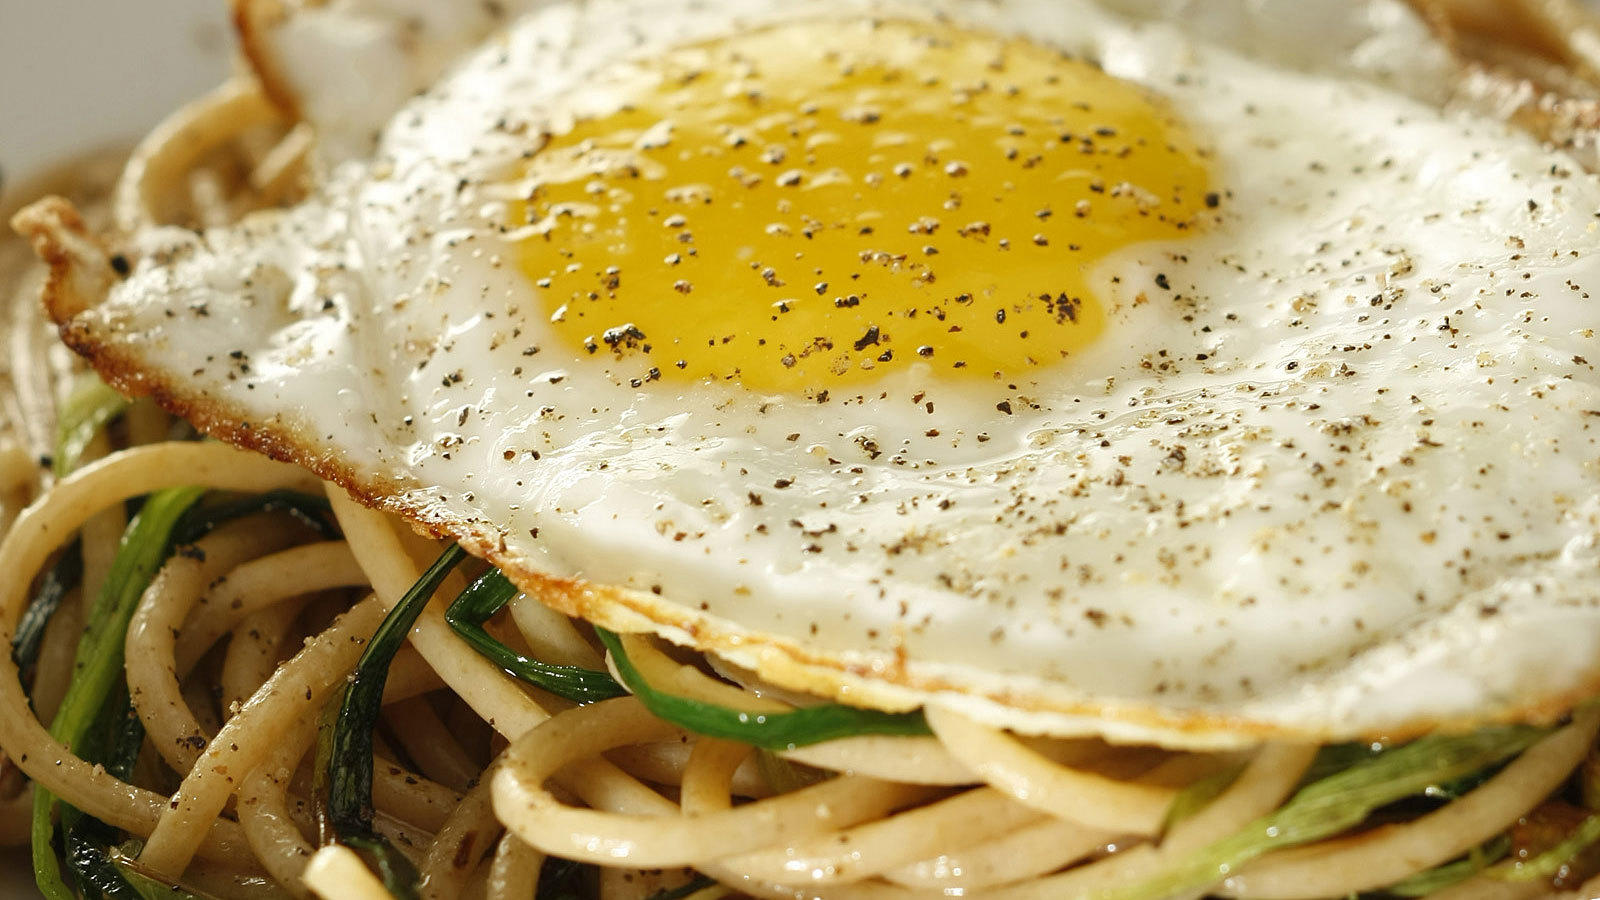 Whole wheat spaghetti with green garlic and fried egg